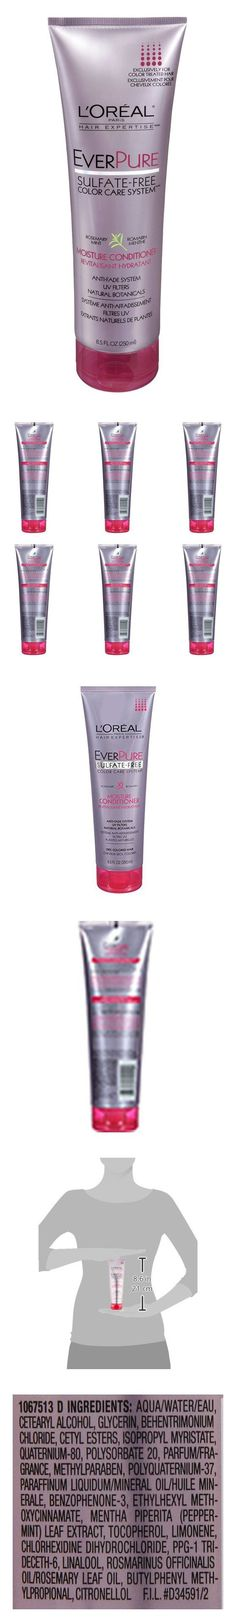 L'Oreal Paris EverPure Sulfate-Free Color Care System Moisture Conditioner #pantry #health_personal_care #lorealparis